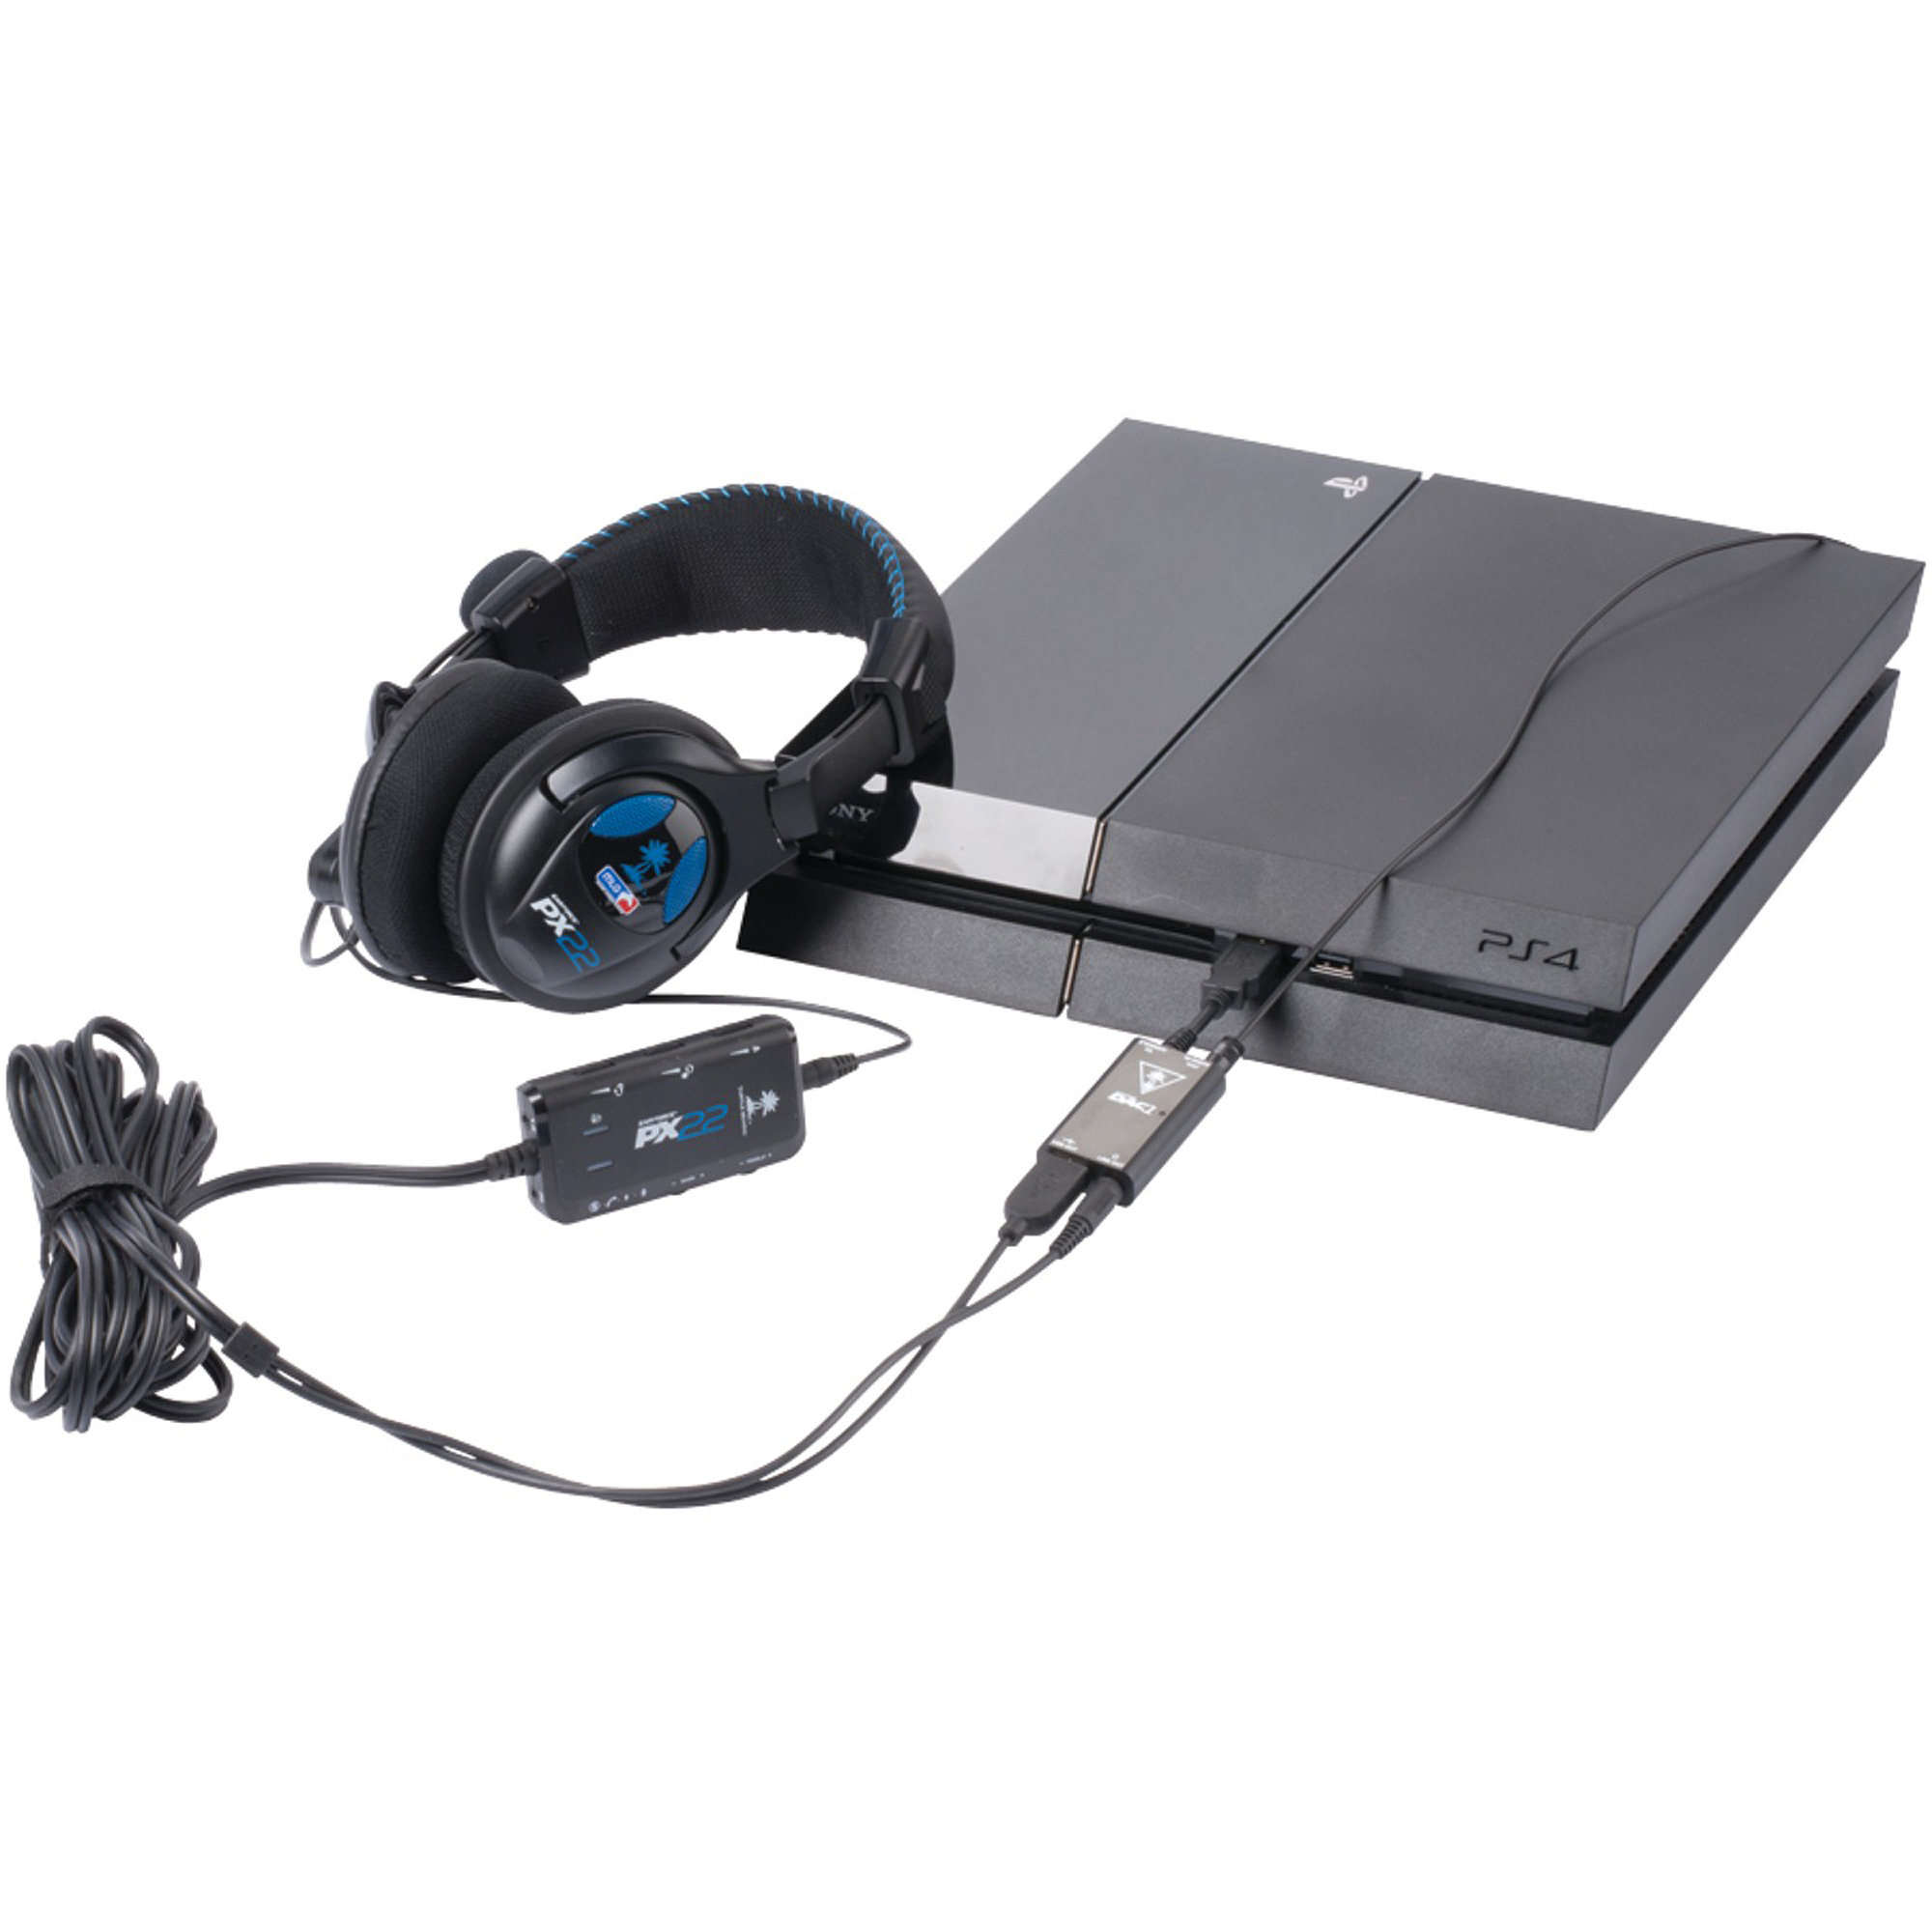 TURTLE BEACH TBS-0115-01 PS4 Upgrade Kit